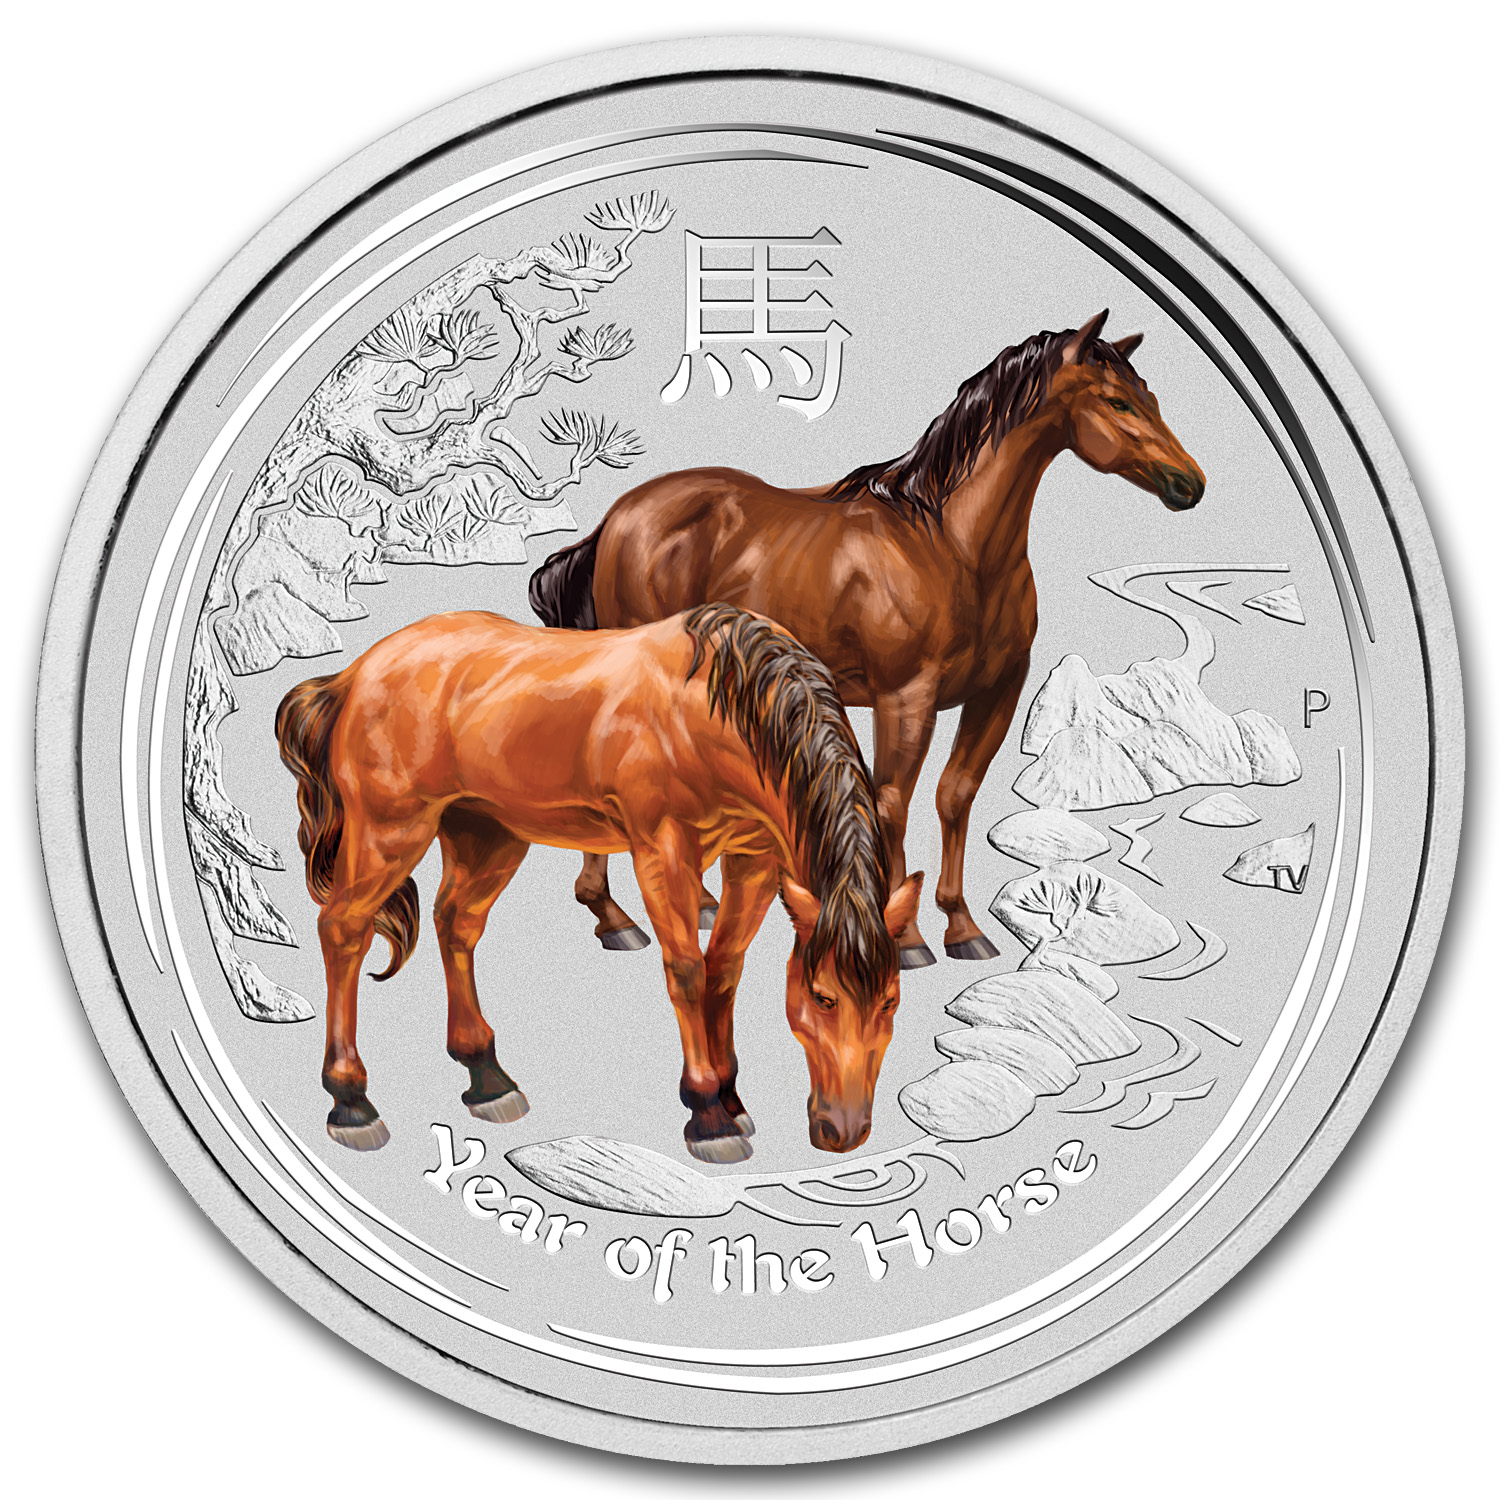 2014 1/2 oz Silver Australian Year of the Horse (Colorized)